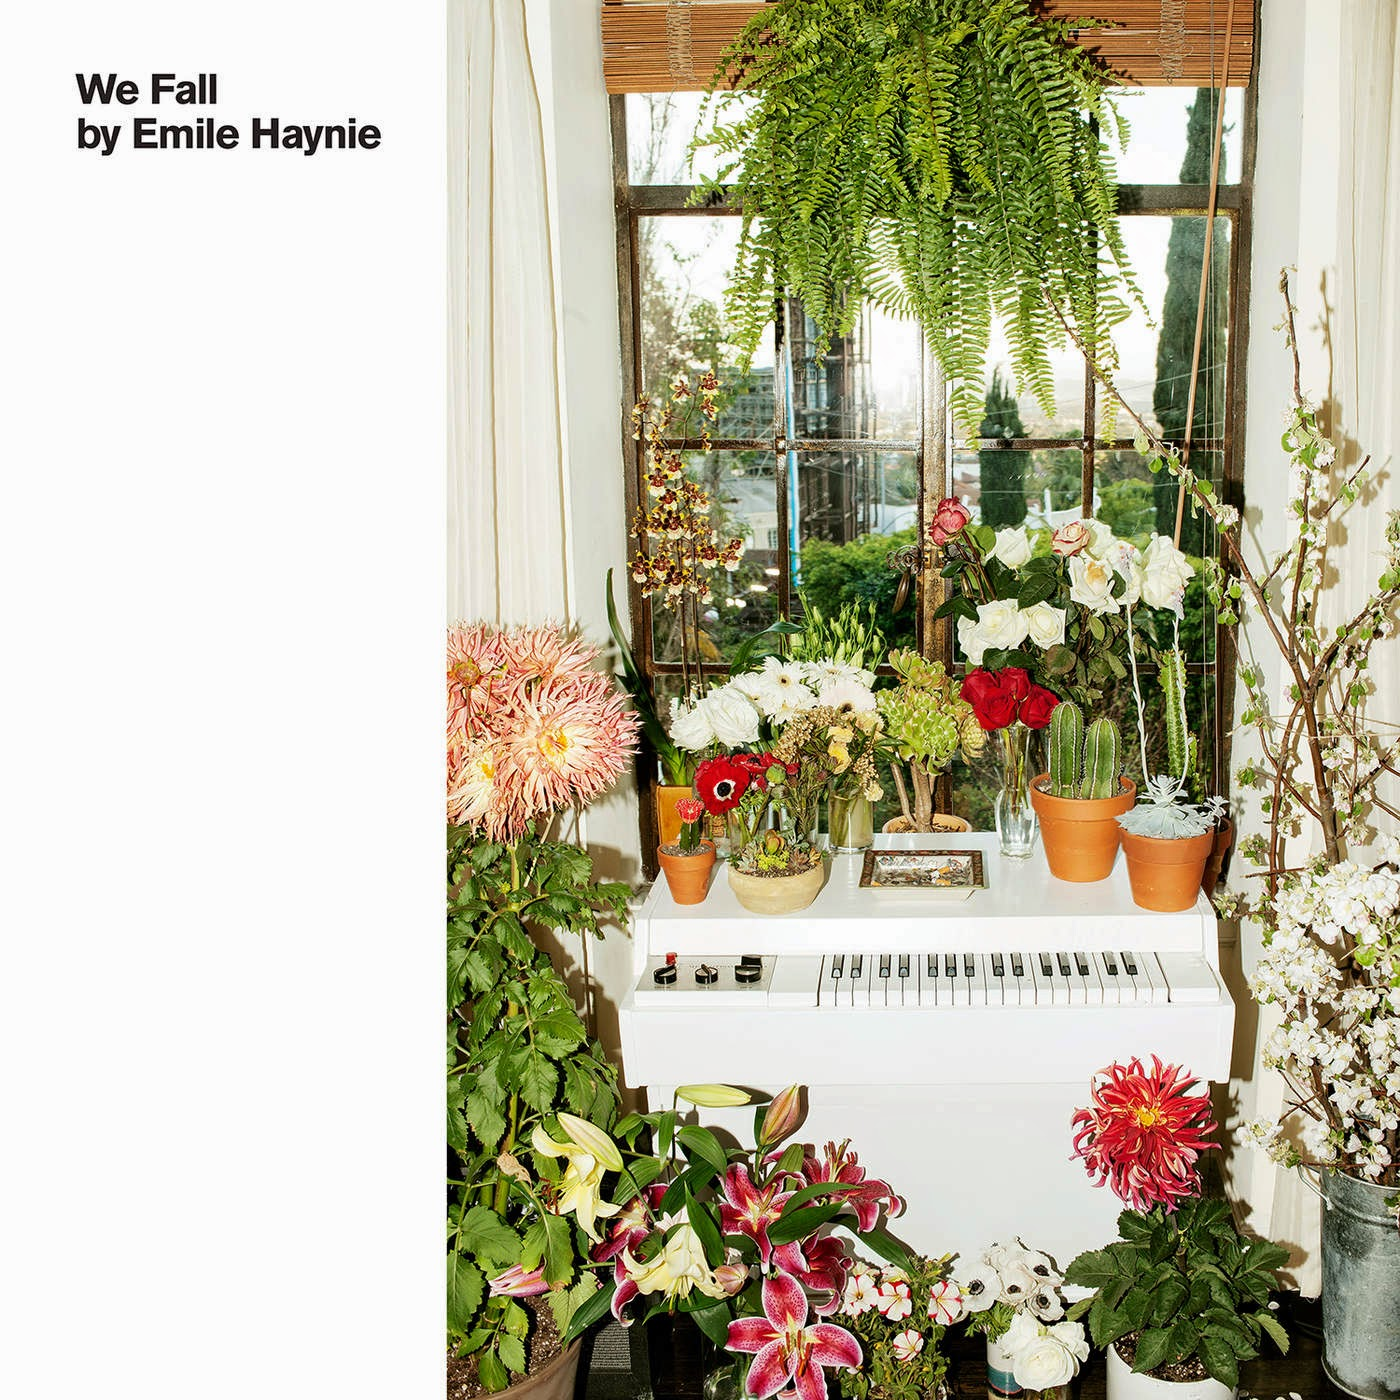 emile-haynie-we-fall-cover